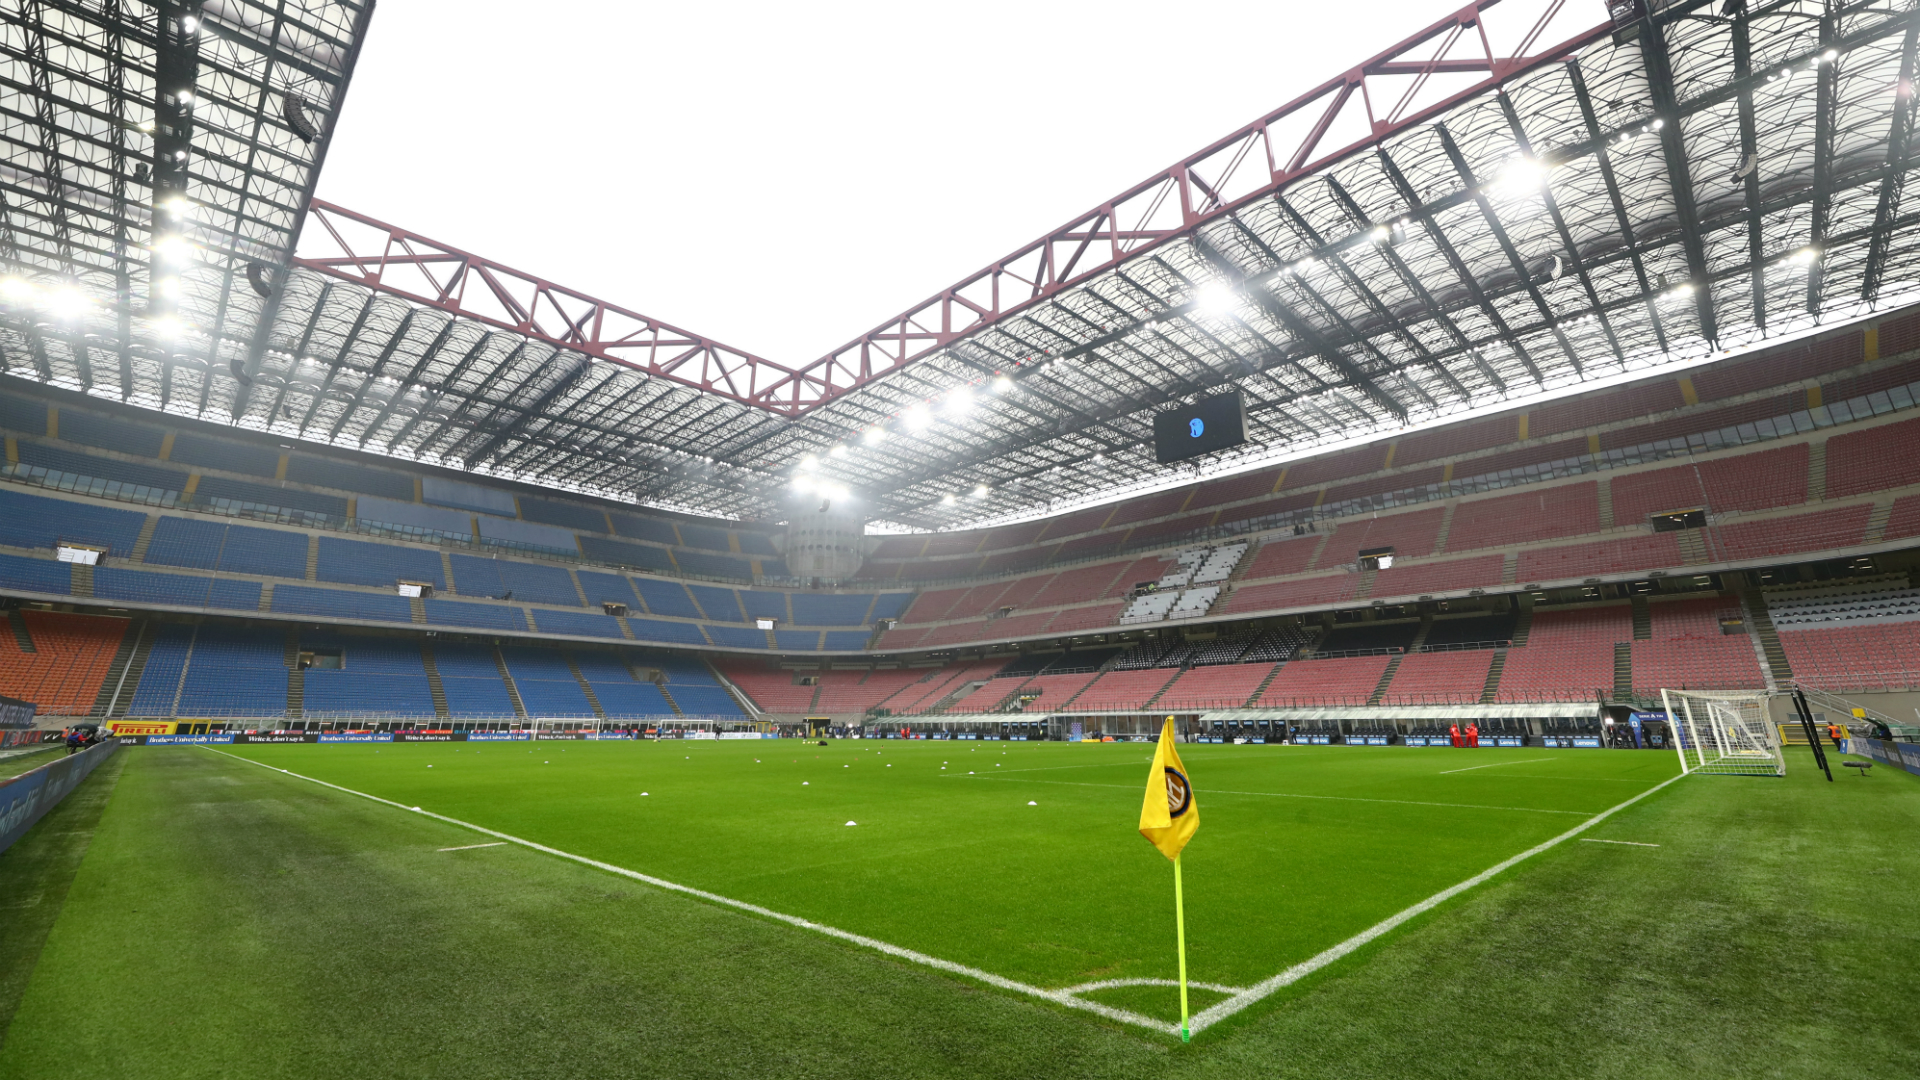 Inter president Zhang 'categorically denies' rumours club is for sale